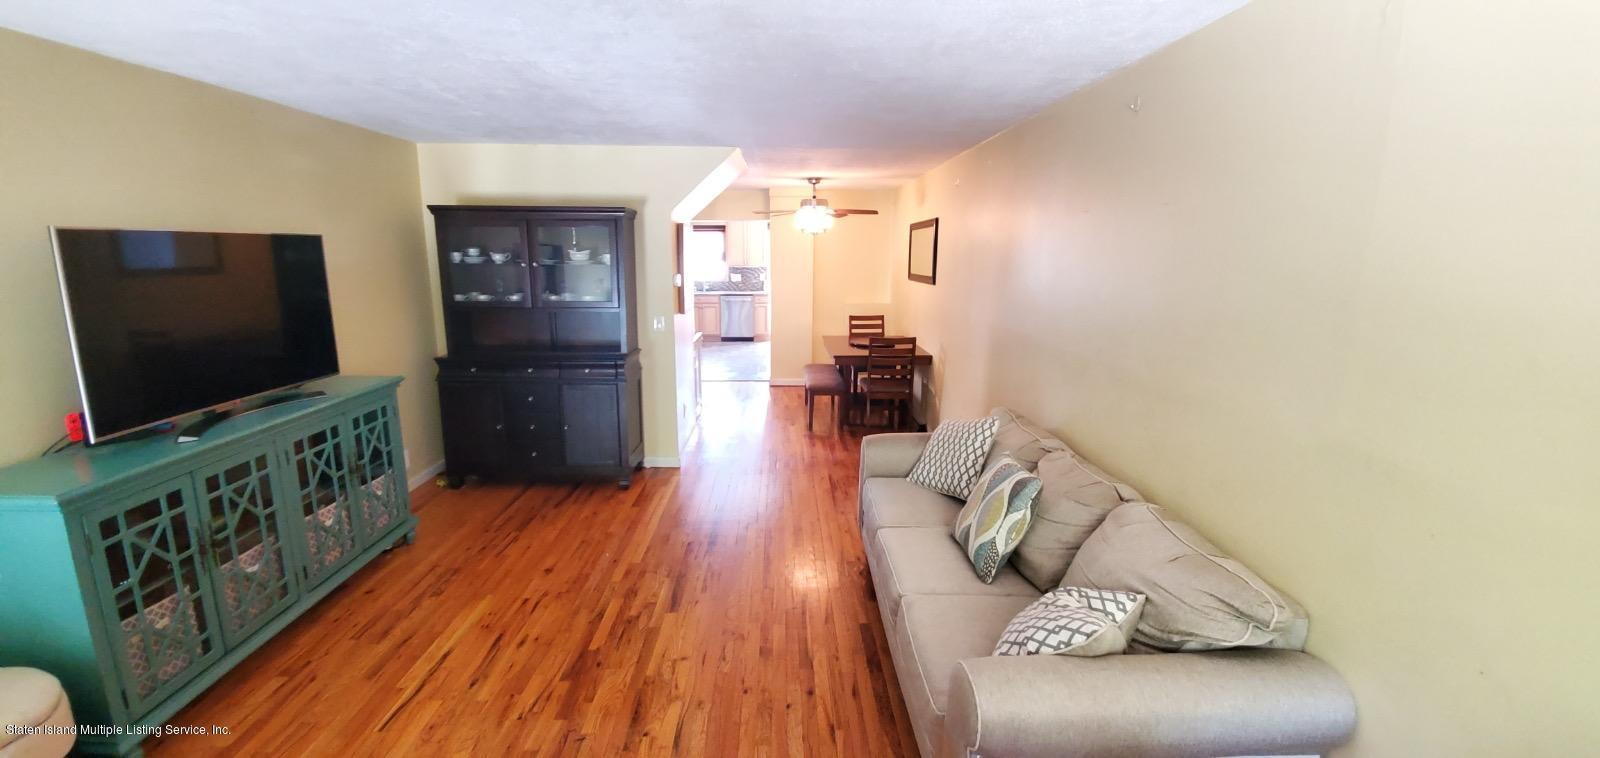 Single Family - Attached 421 Riedel Avenue  Staten Island, NY 10306, MLS-1139129-2